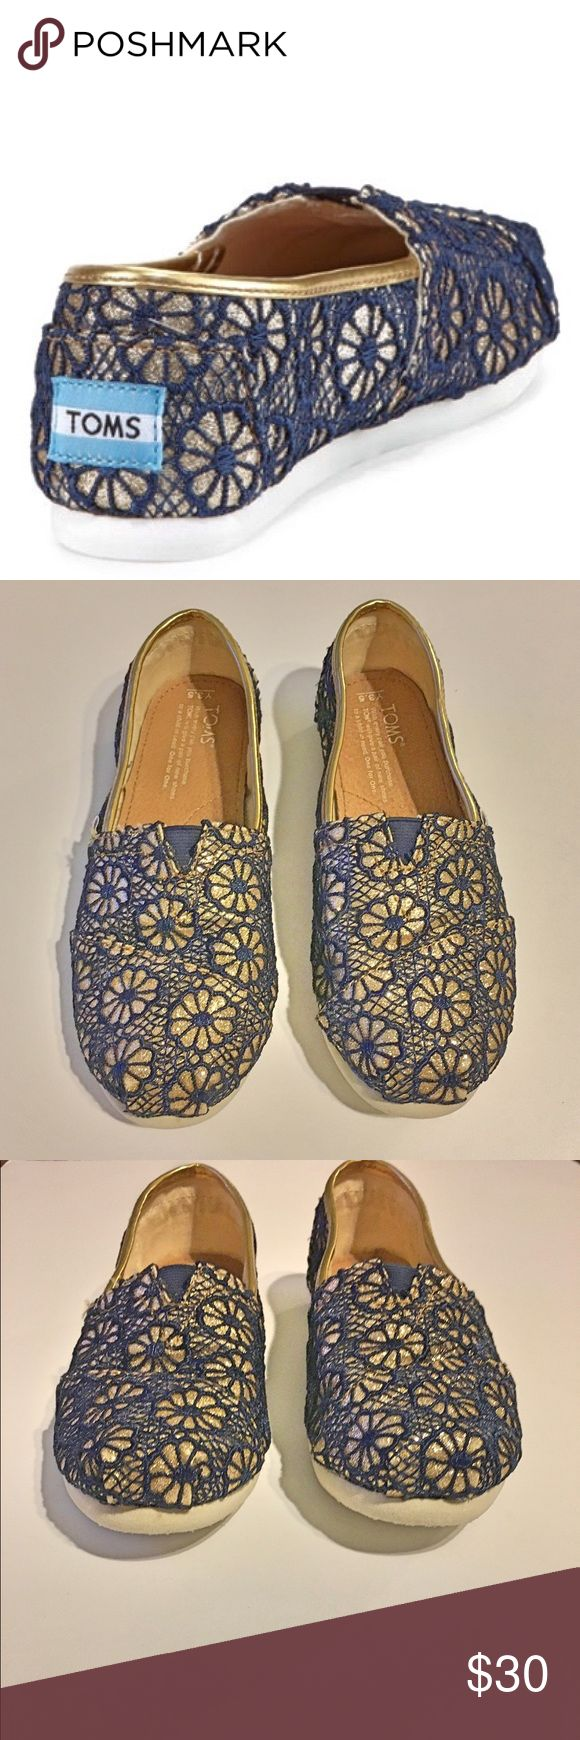 TOMS Glitter Gold & Navy Blue Floral Crochet Shoes TOMS Glitter Gold & Navy Blue Floral Crochet Shoes ~ Size Y 3.5 ~ First photo is a stock photo not actual shoe. TOMS Shoes